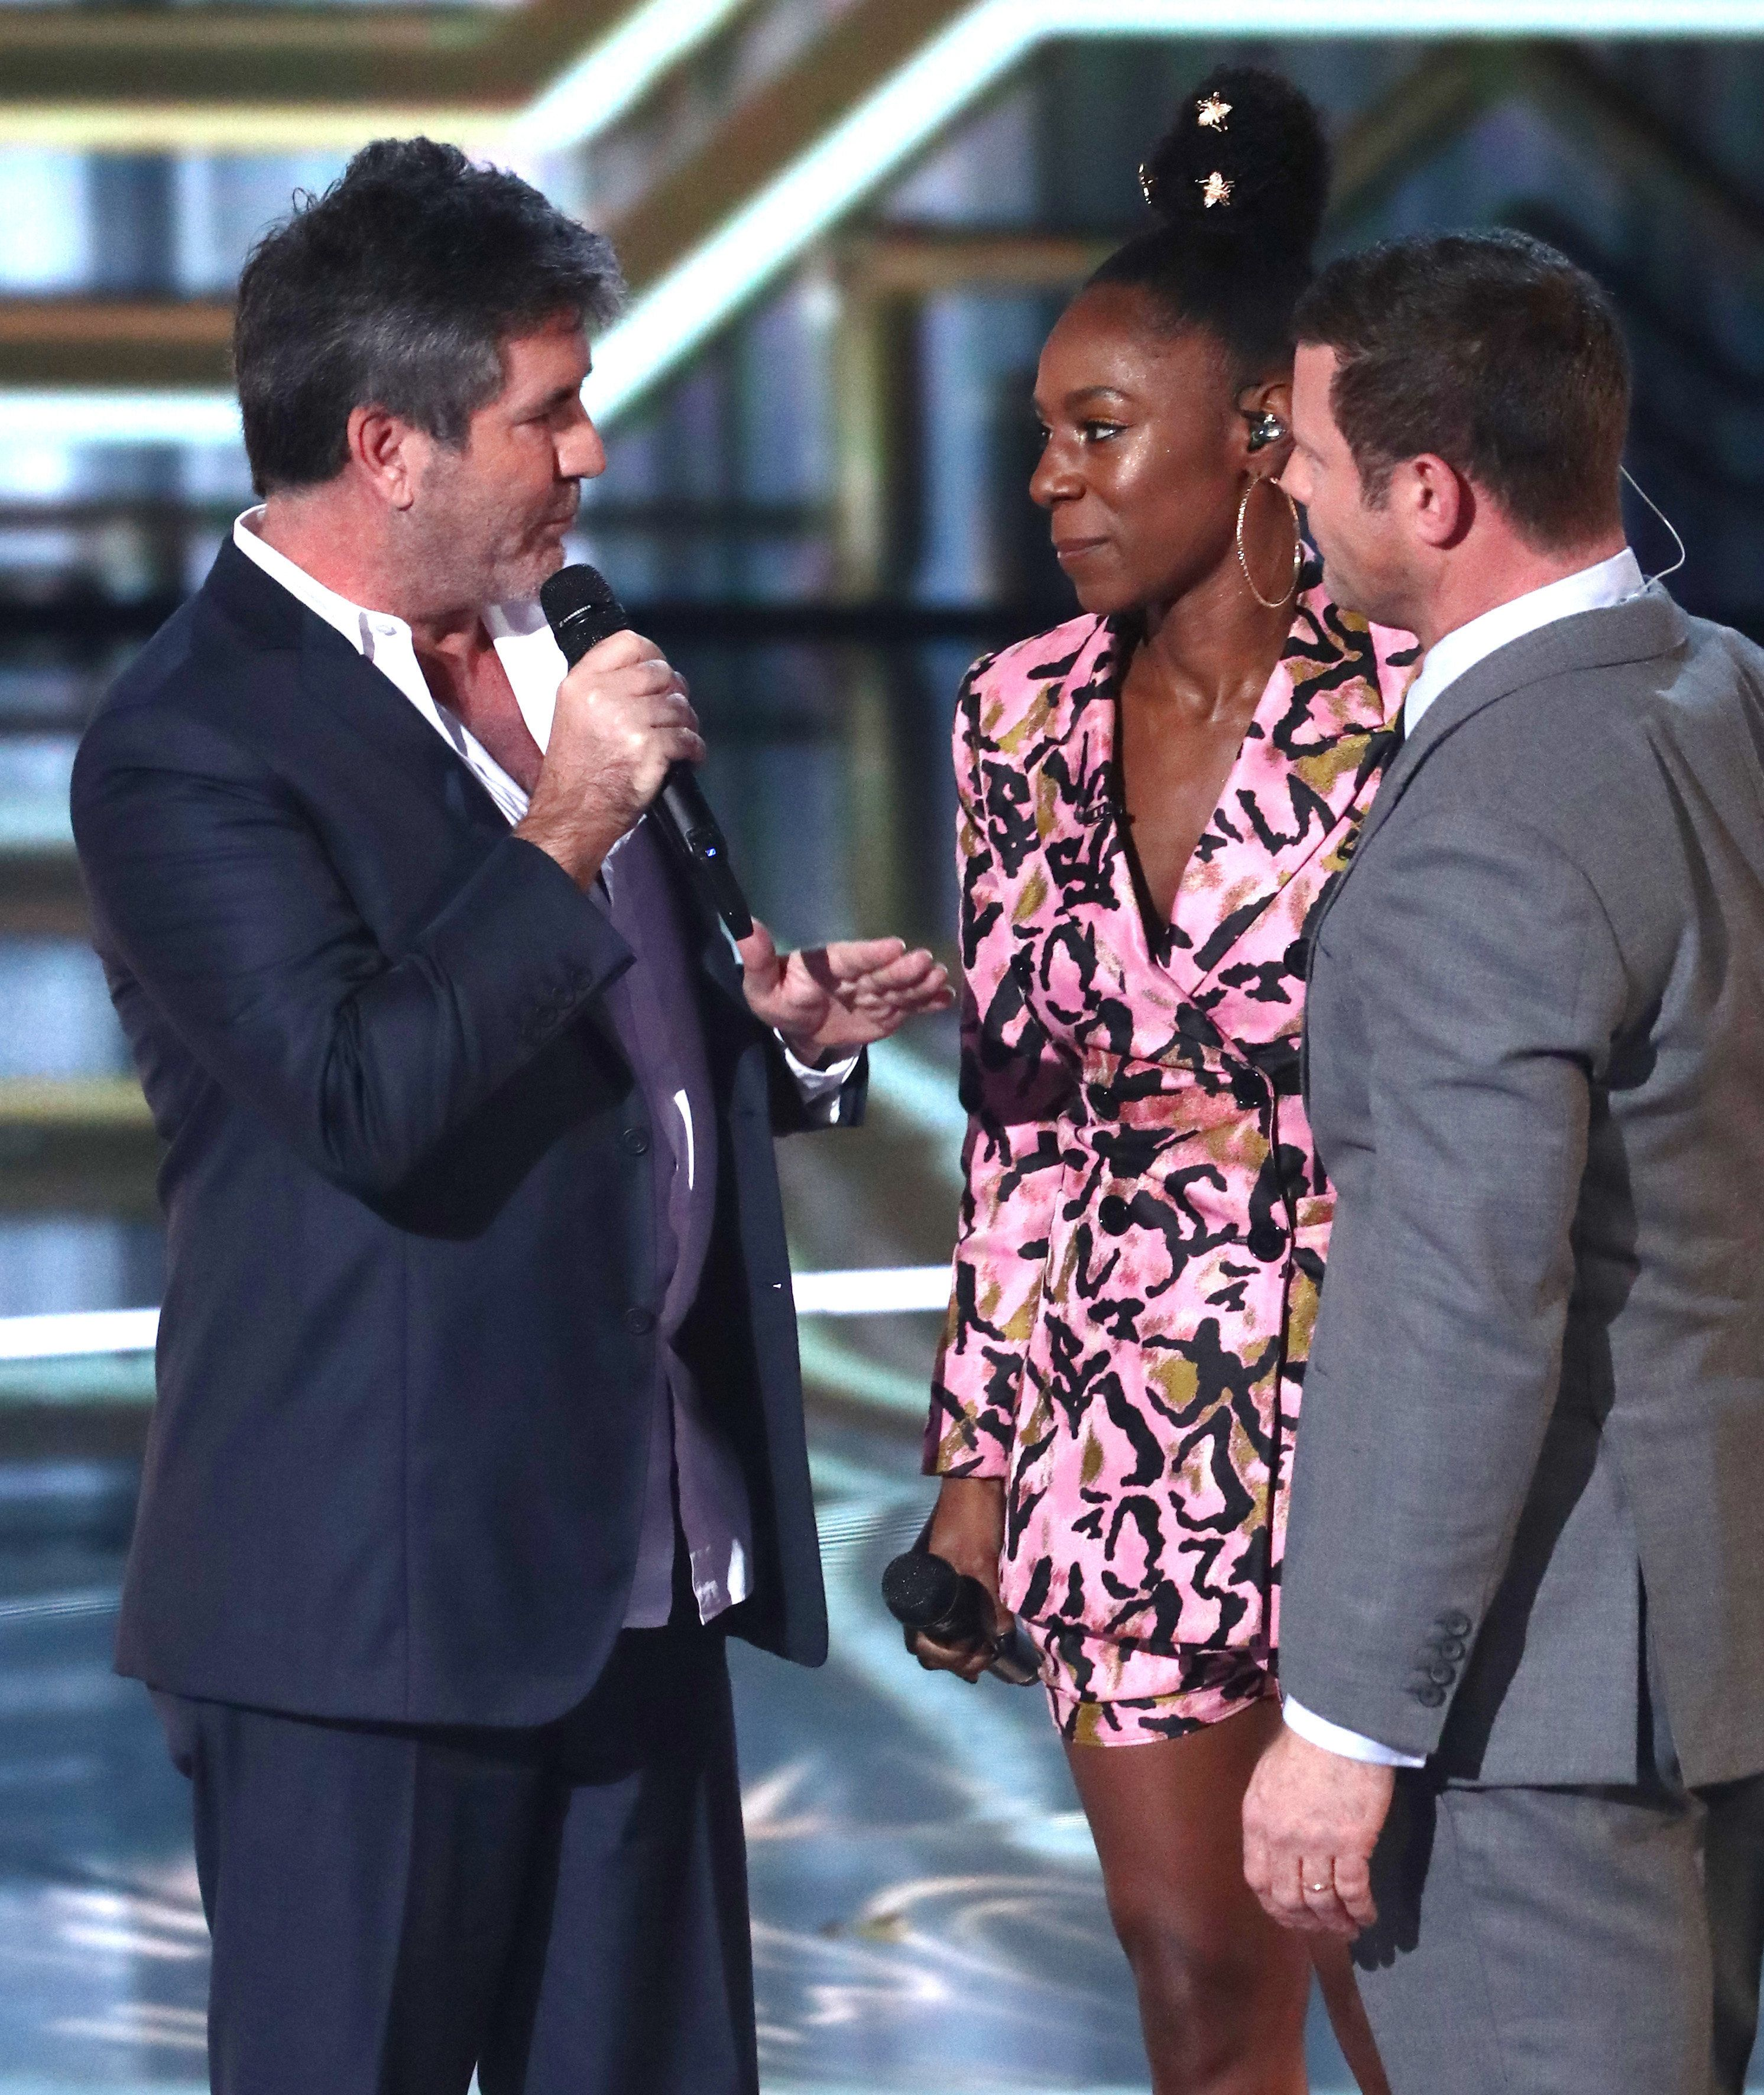 'X Factor' Fans Claim Show Is 'Making It Up As They Go Along' As Simon Cowell Boastfully Changes